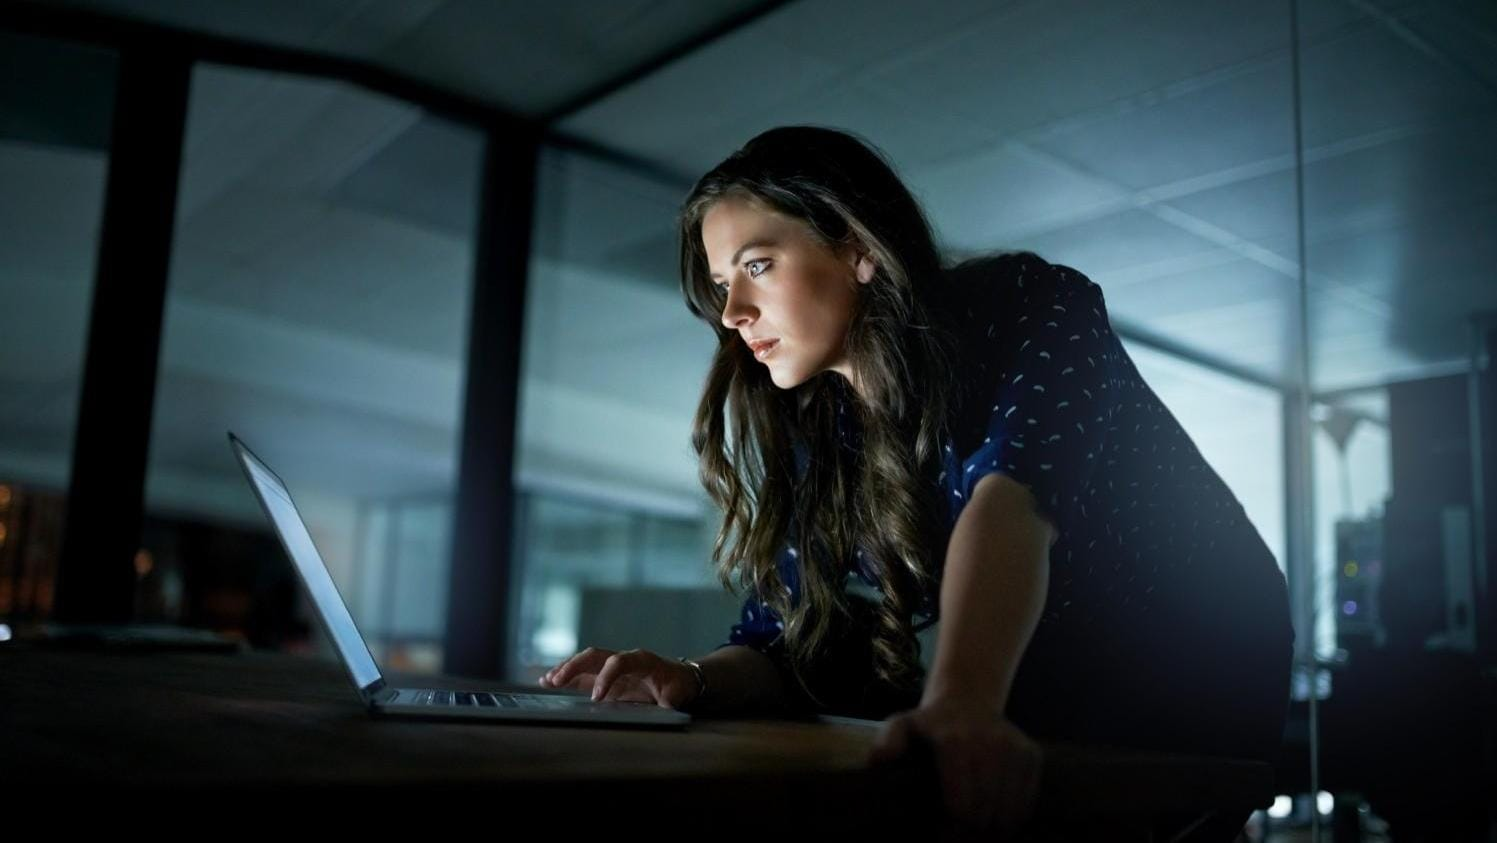 Woman working late at night